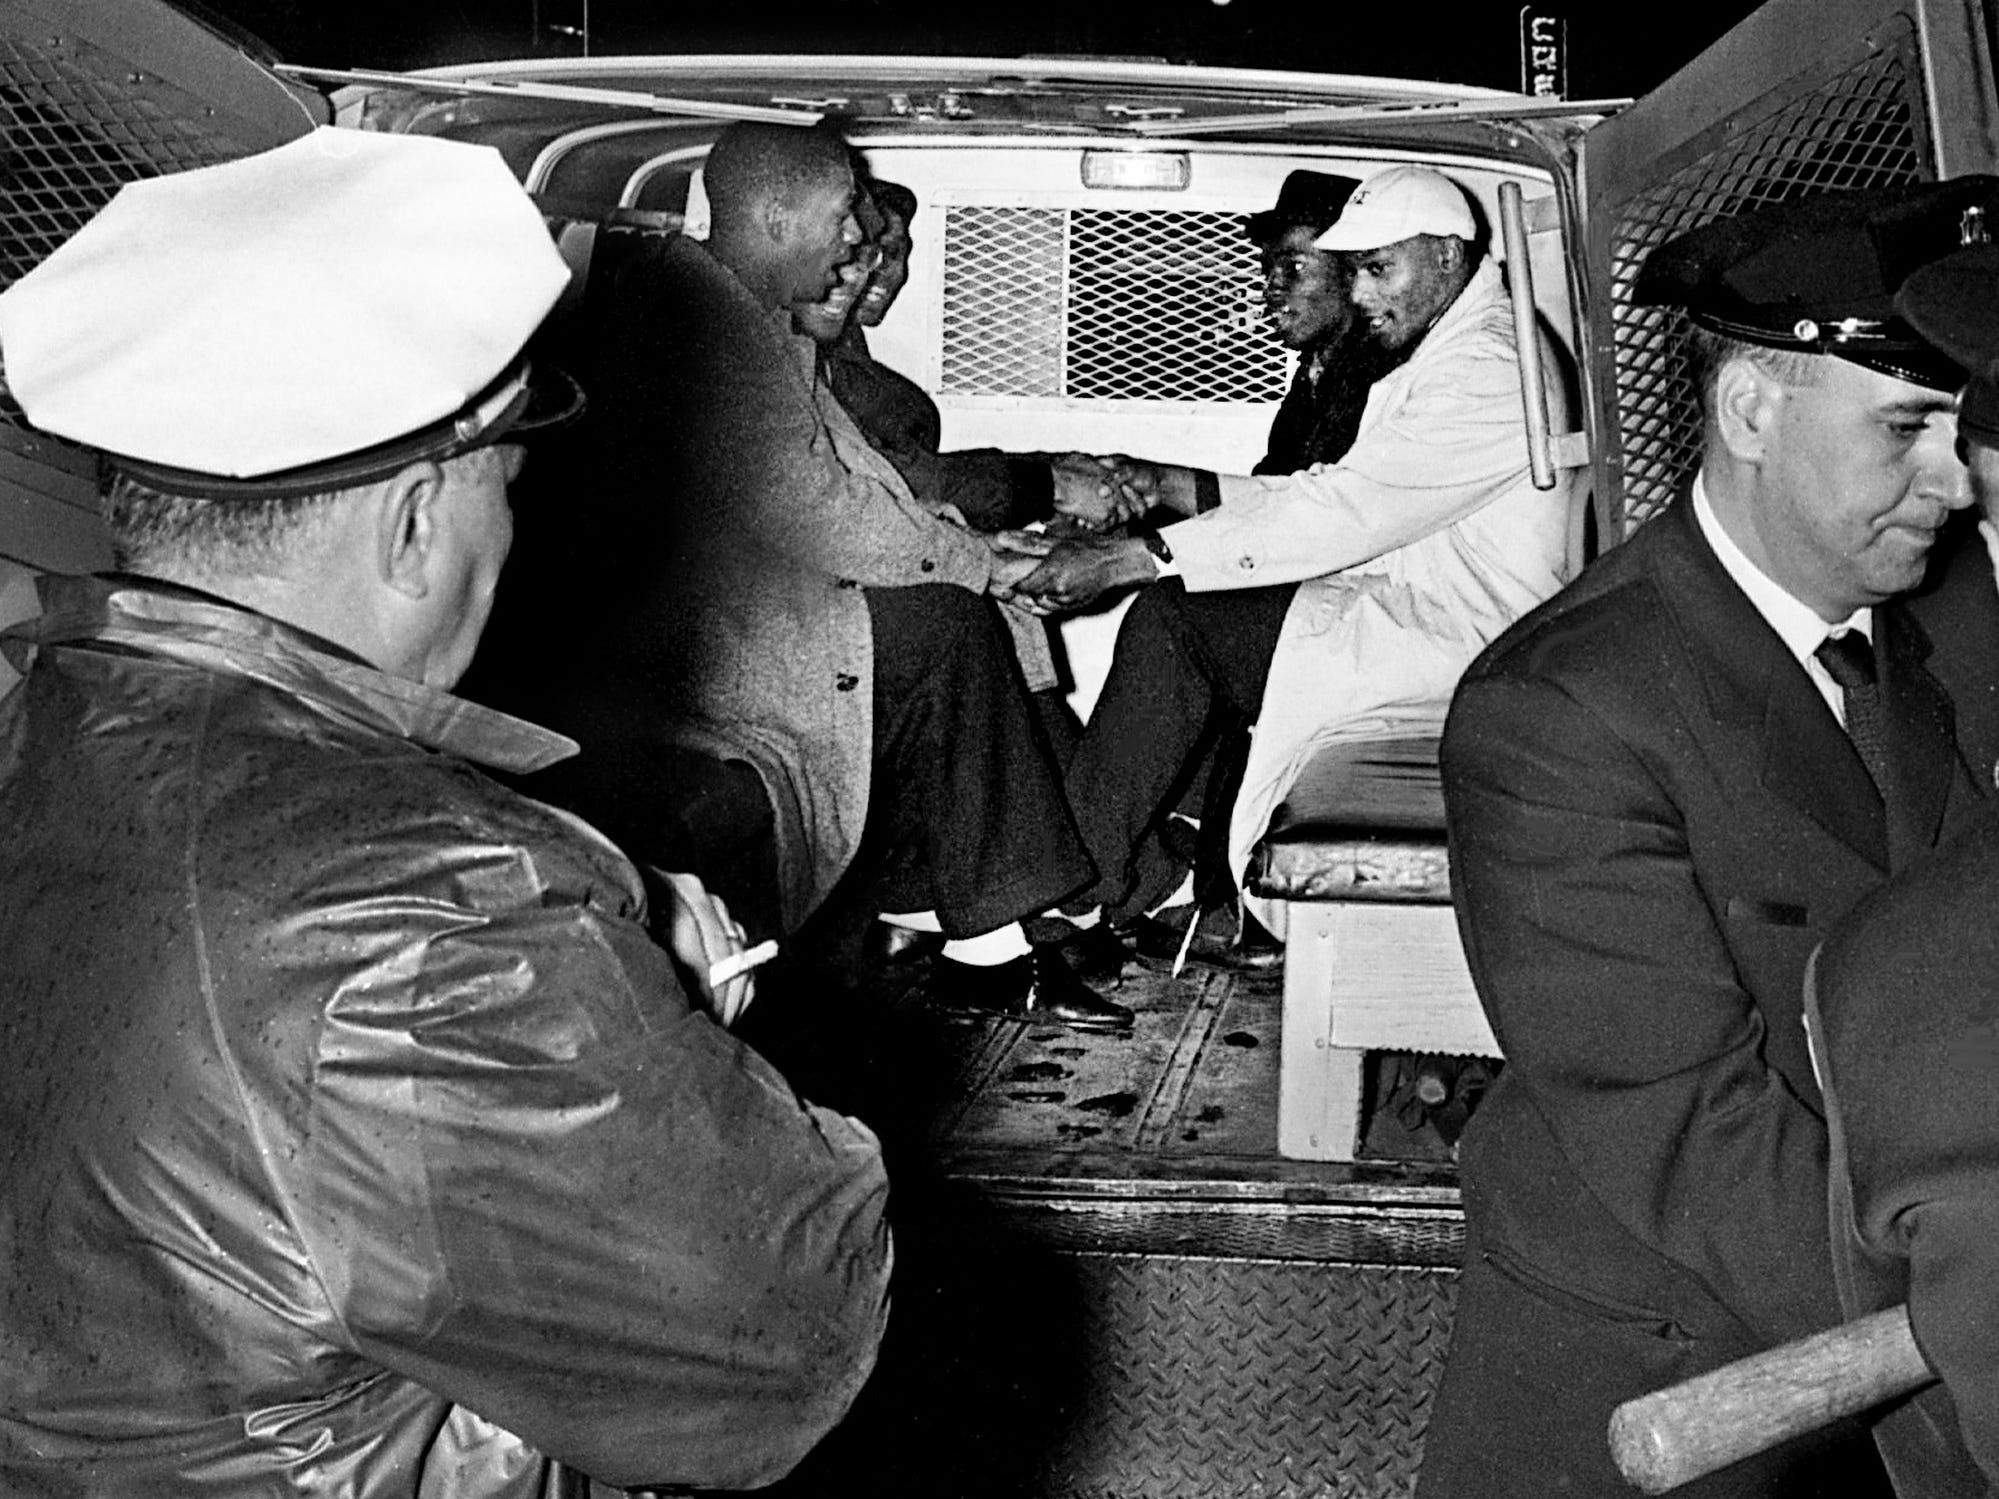 Black college students, including Lester McKinnie, right, greet one another after being put into a Nashville police wagon in front of the Tennessee Theater. The demonstrators allegedly blocked a fire exit and refused to move when ordered to do so by a city fire inspector Feb. 20, 1961. Twenty-eight demonstrators were arrested and charged with violating a section of the city code relating to fire exits.